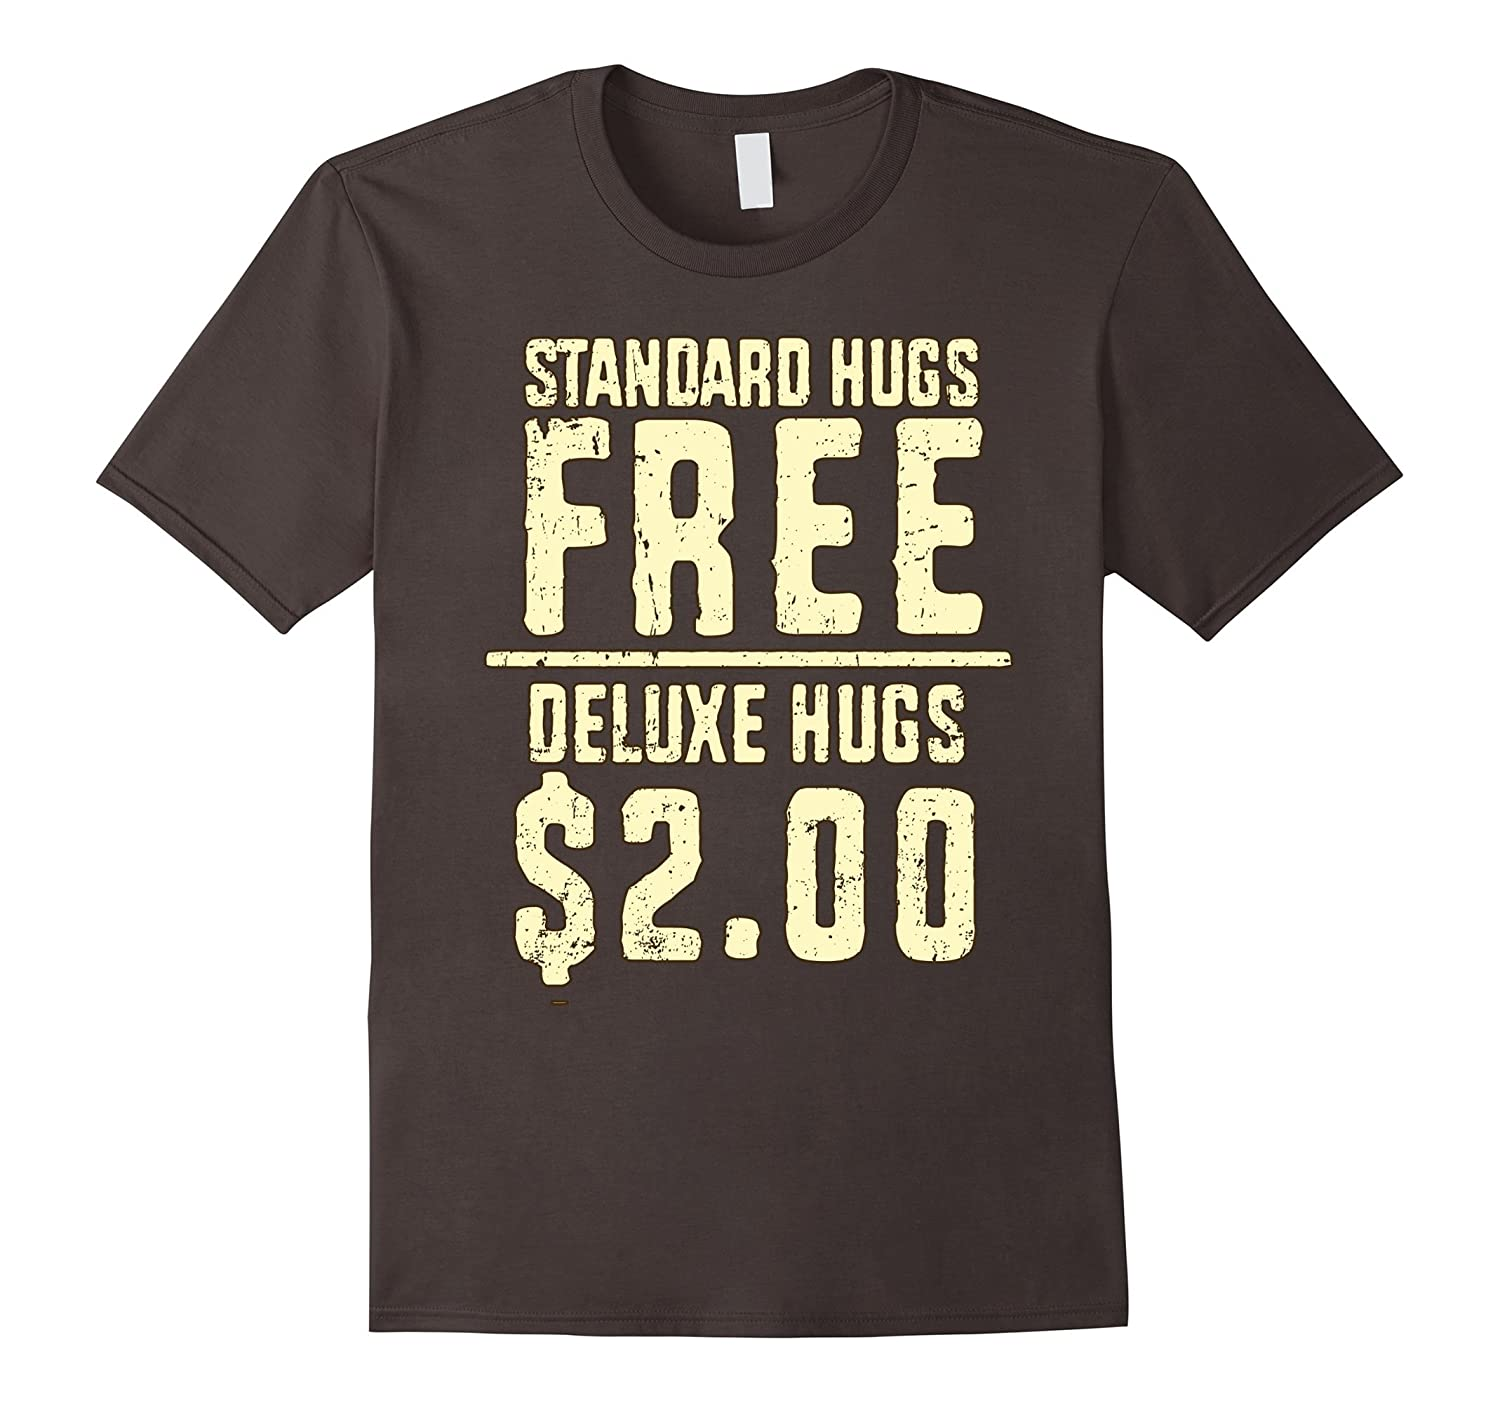 5 Colors- REGULAR HUGS DELUXE HUGS- Retro Distressed Look-FL